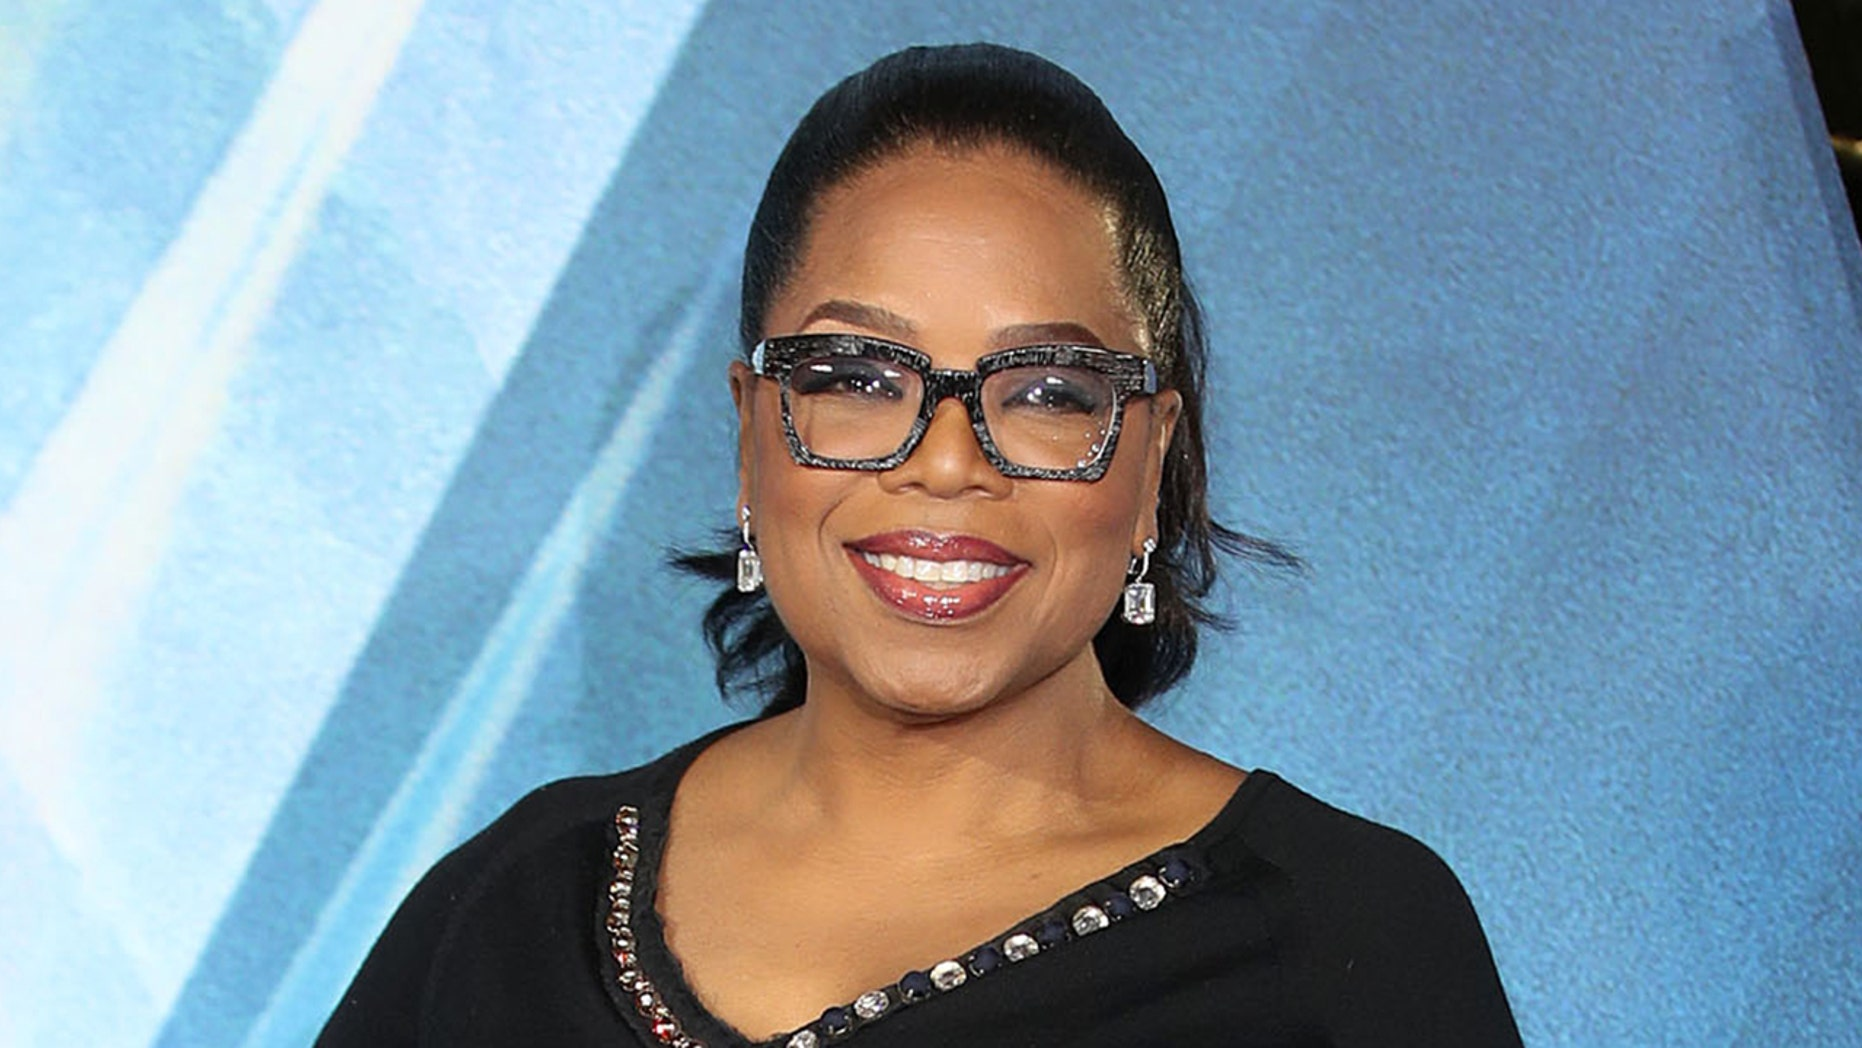 Oprah Winfrey attends the European Premiere of 'A Wrinkle In Time' at BFI IMAX on March 13, 2018 in London, England. On May 17, 2019 Oprah surprised a New Jersey High School with a $500,000 donation to their after school program.